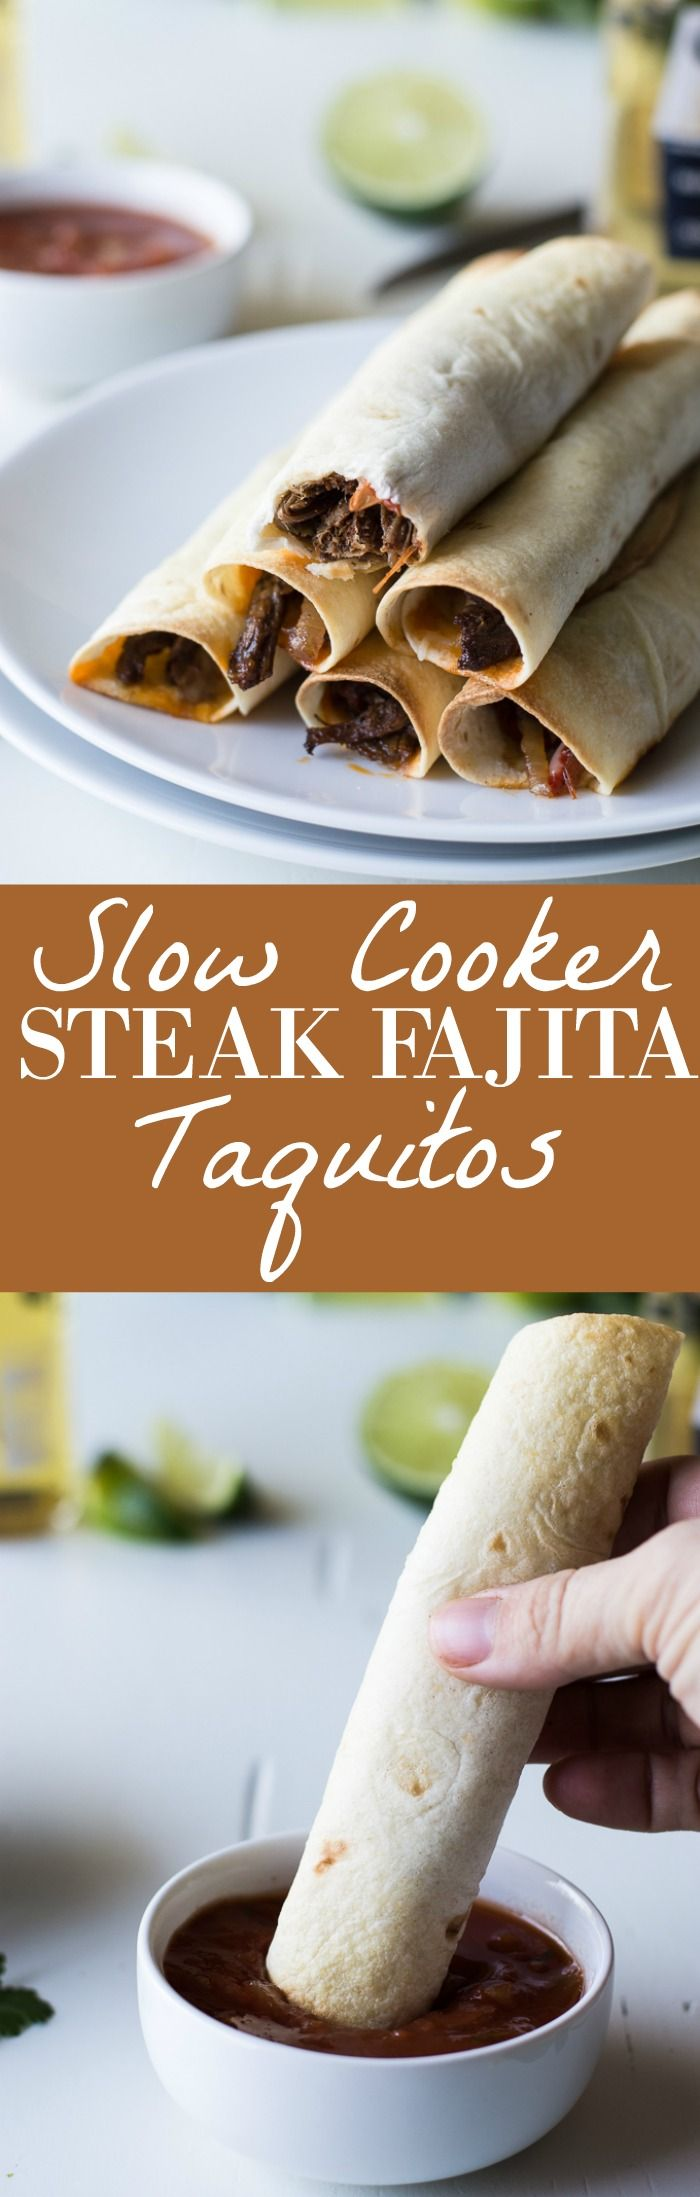 Slow Cooker Steak Fajita Taquitos recipe.  Flavorful fajita meat cooked in the slow cooker with peppers and onions then loaded into soft flour tortillas with cheese and baked!